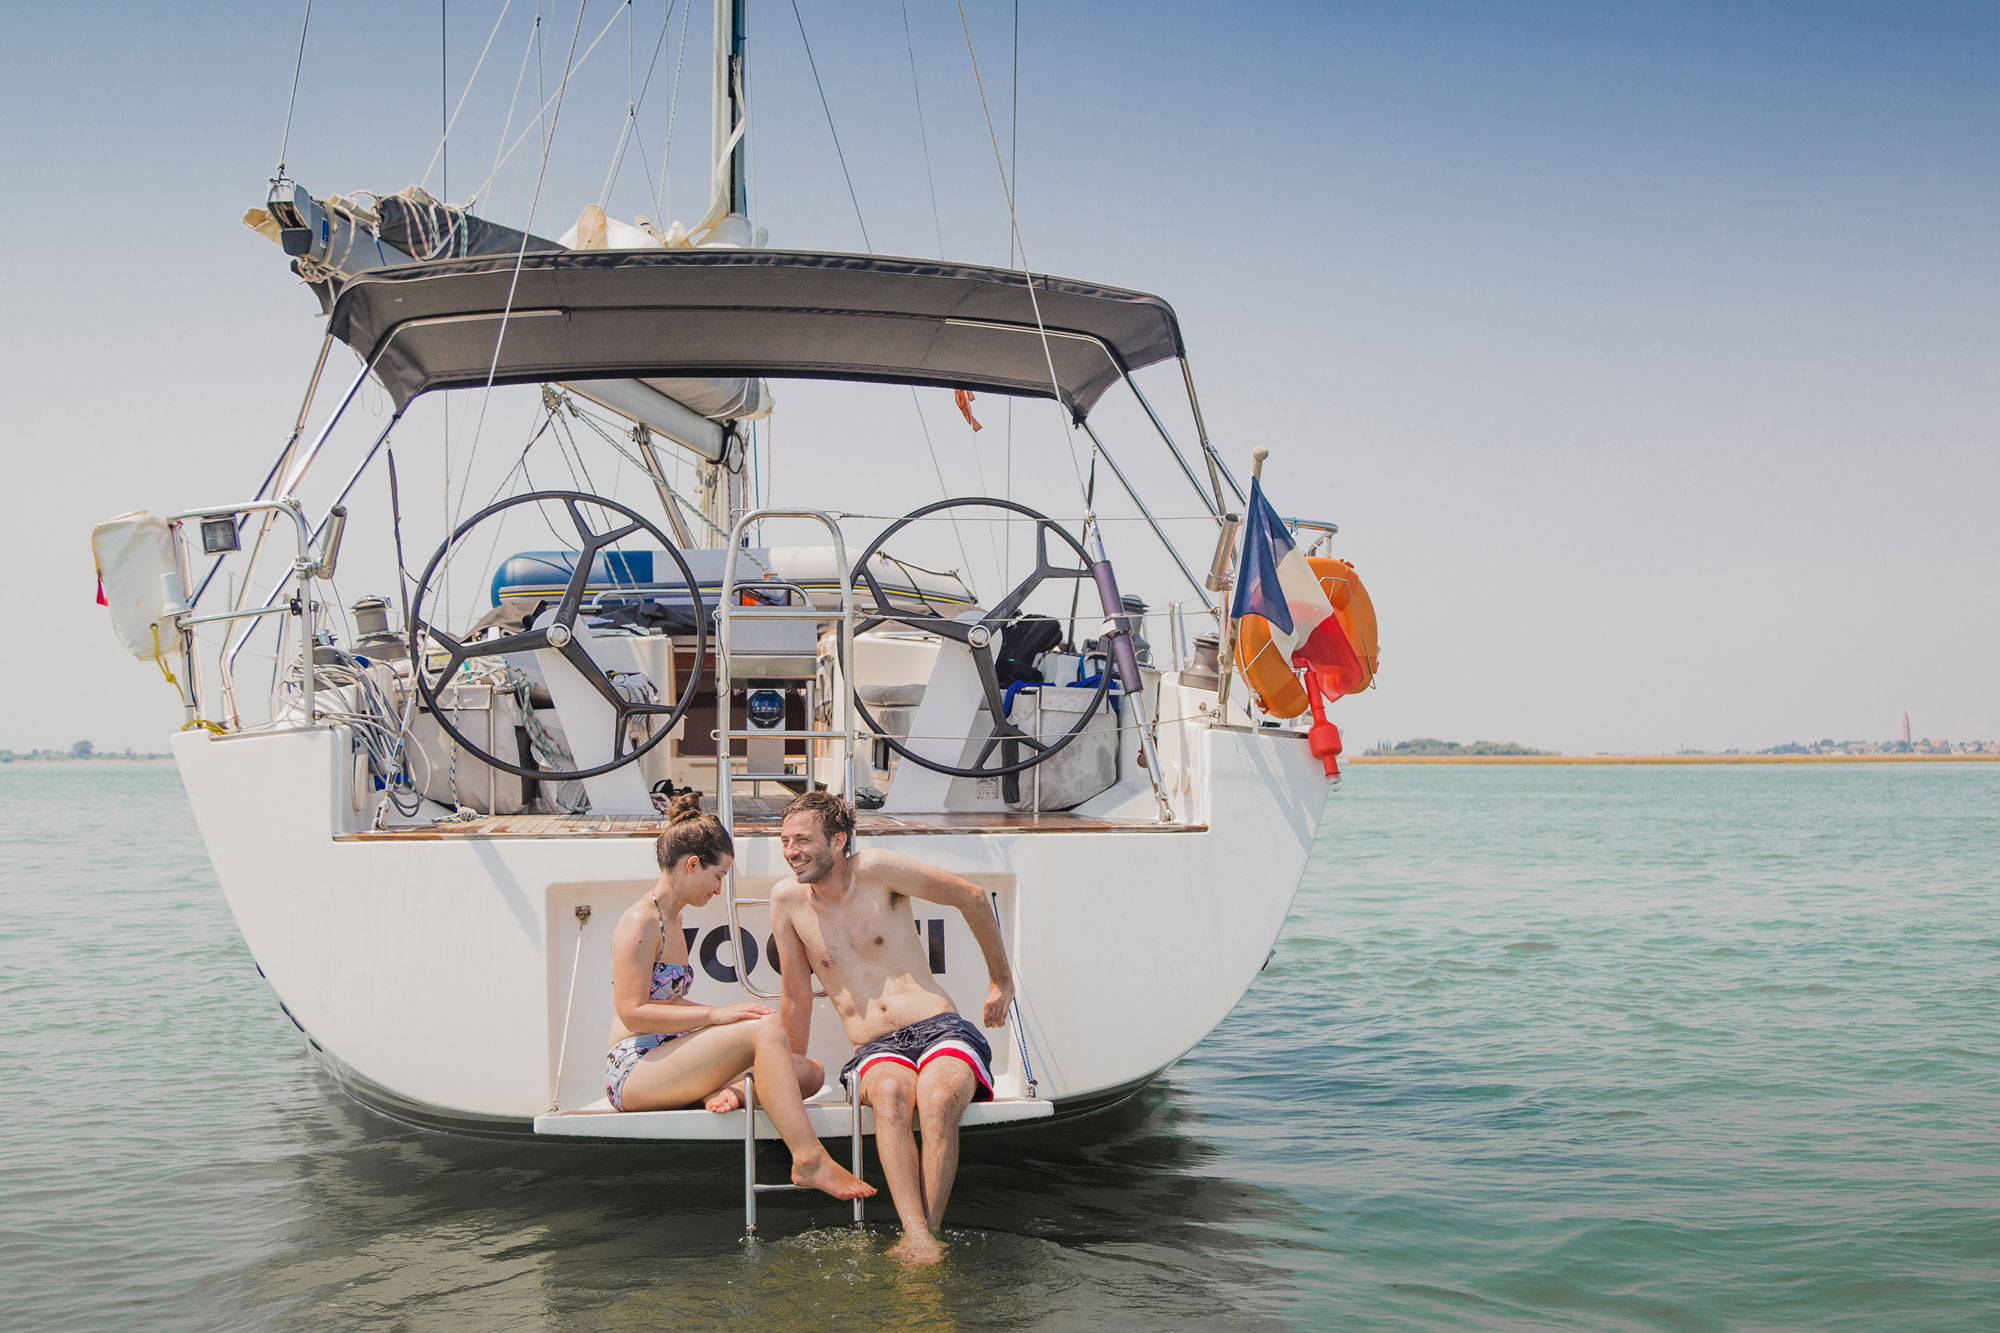 Antlos is a peer to peer marketplace for travellers to book authentic boat holidays with real Skippers around the world